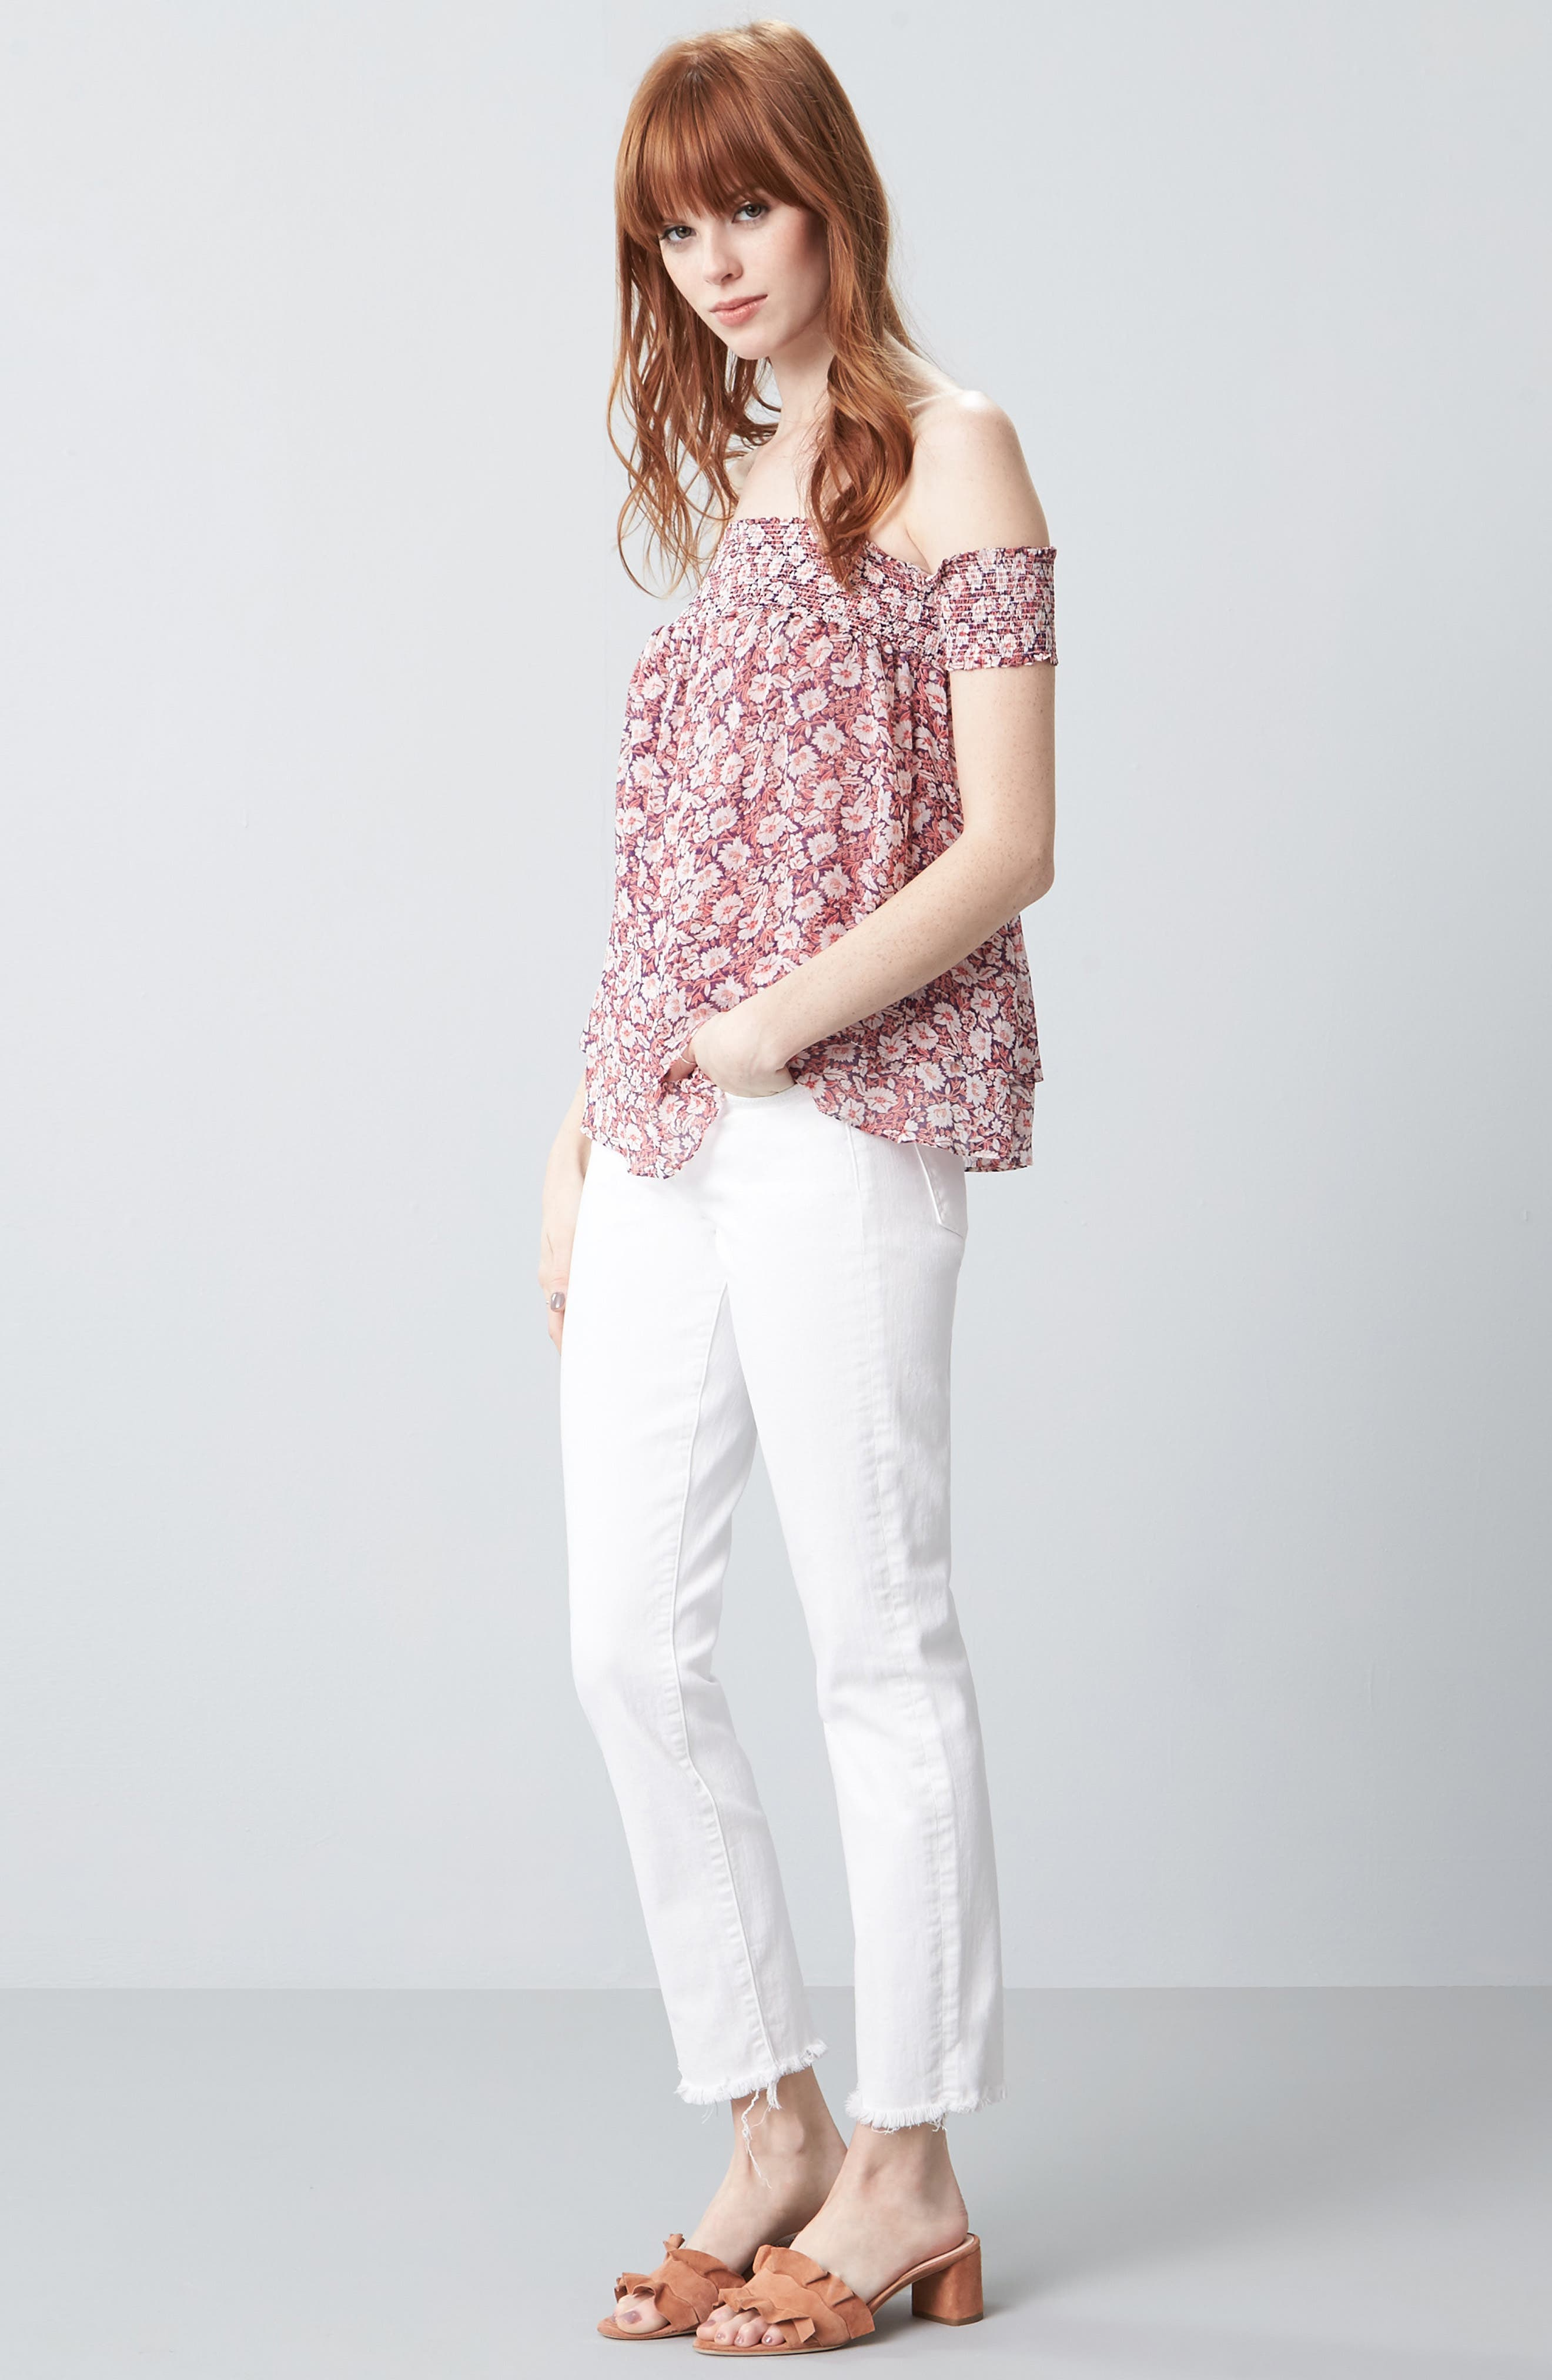 Rebecca Minkoff Top & 7 For All Mankind® Jeans Outfit with Accessories